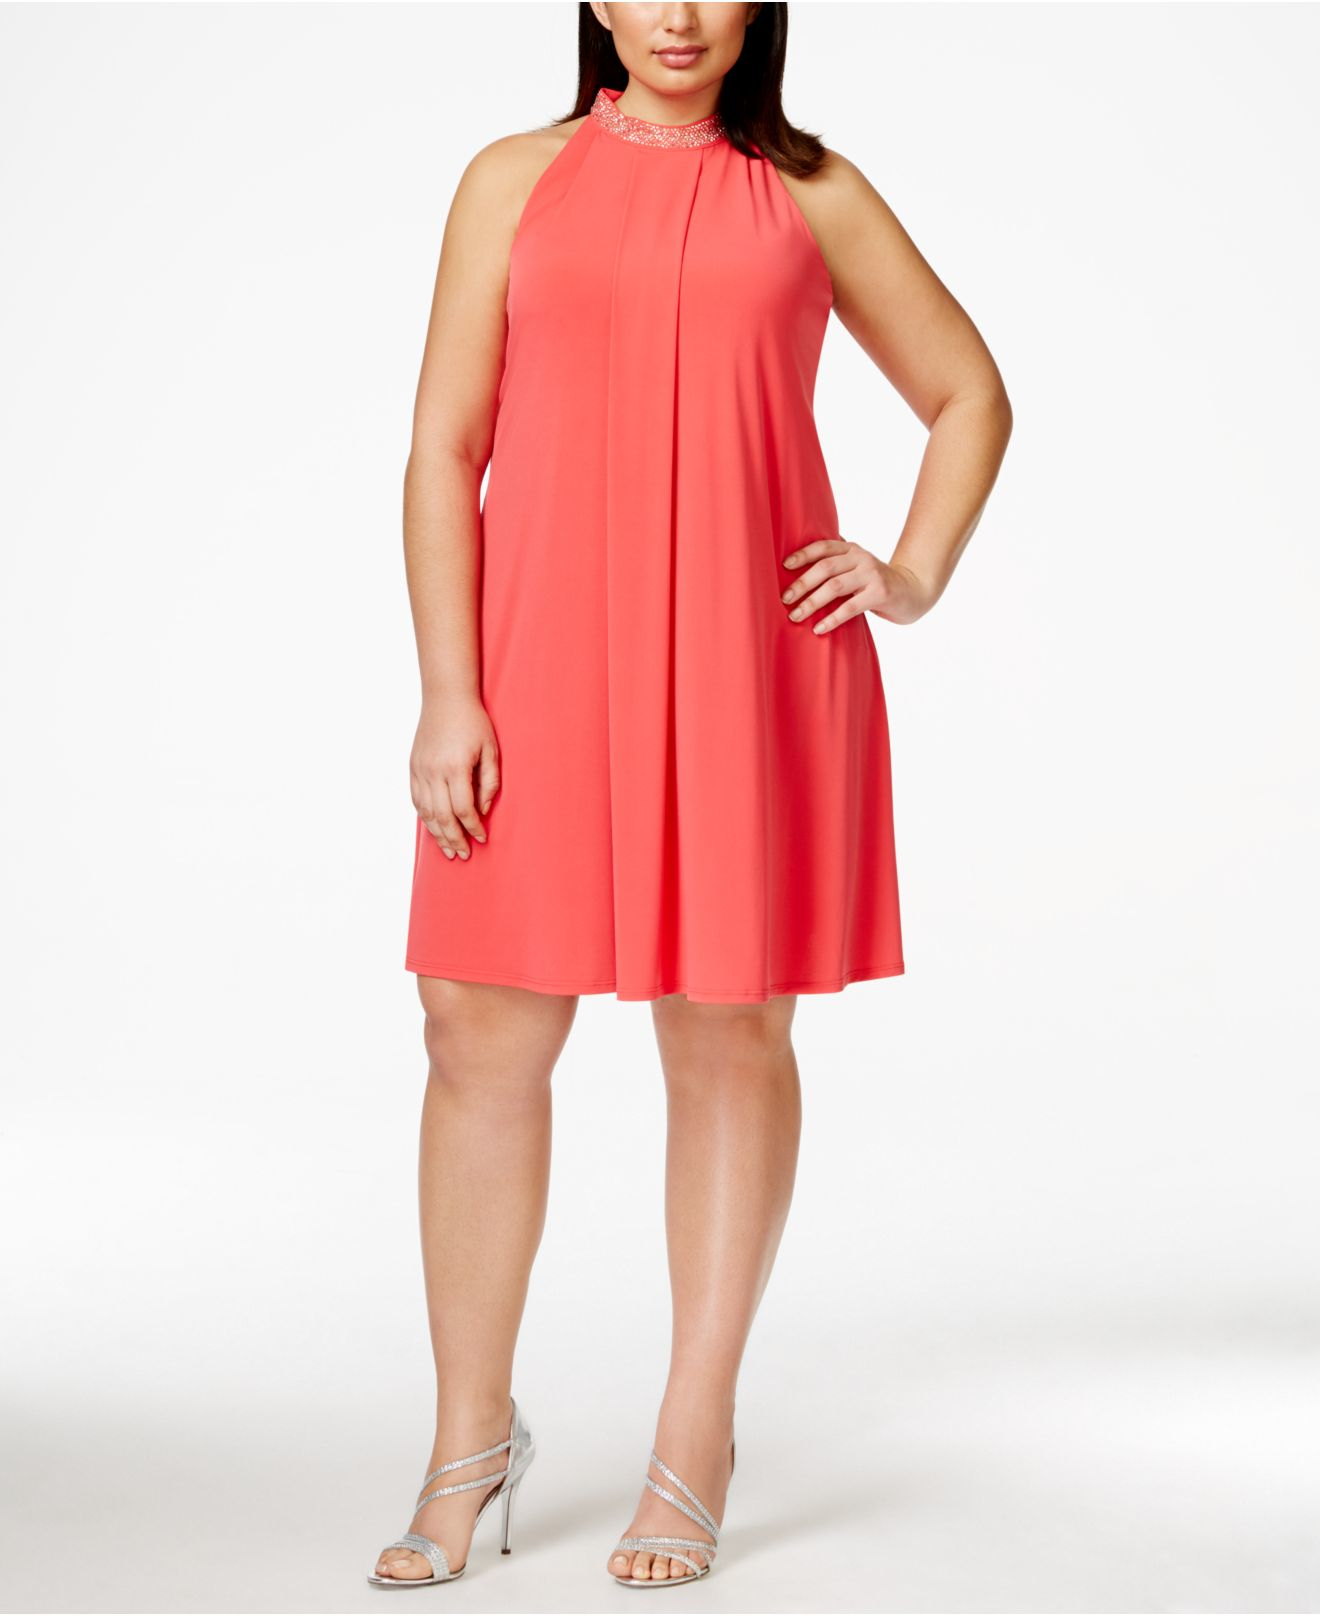 Calvin Klein Plus Size Jewel-neck Trapeze Dress in Pink - Lyst